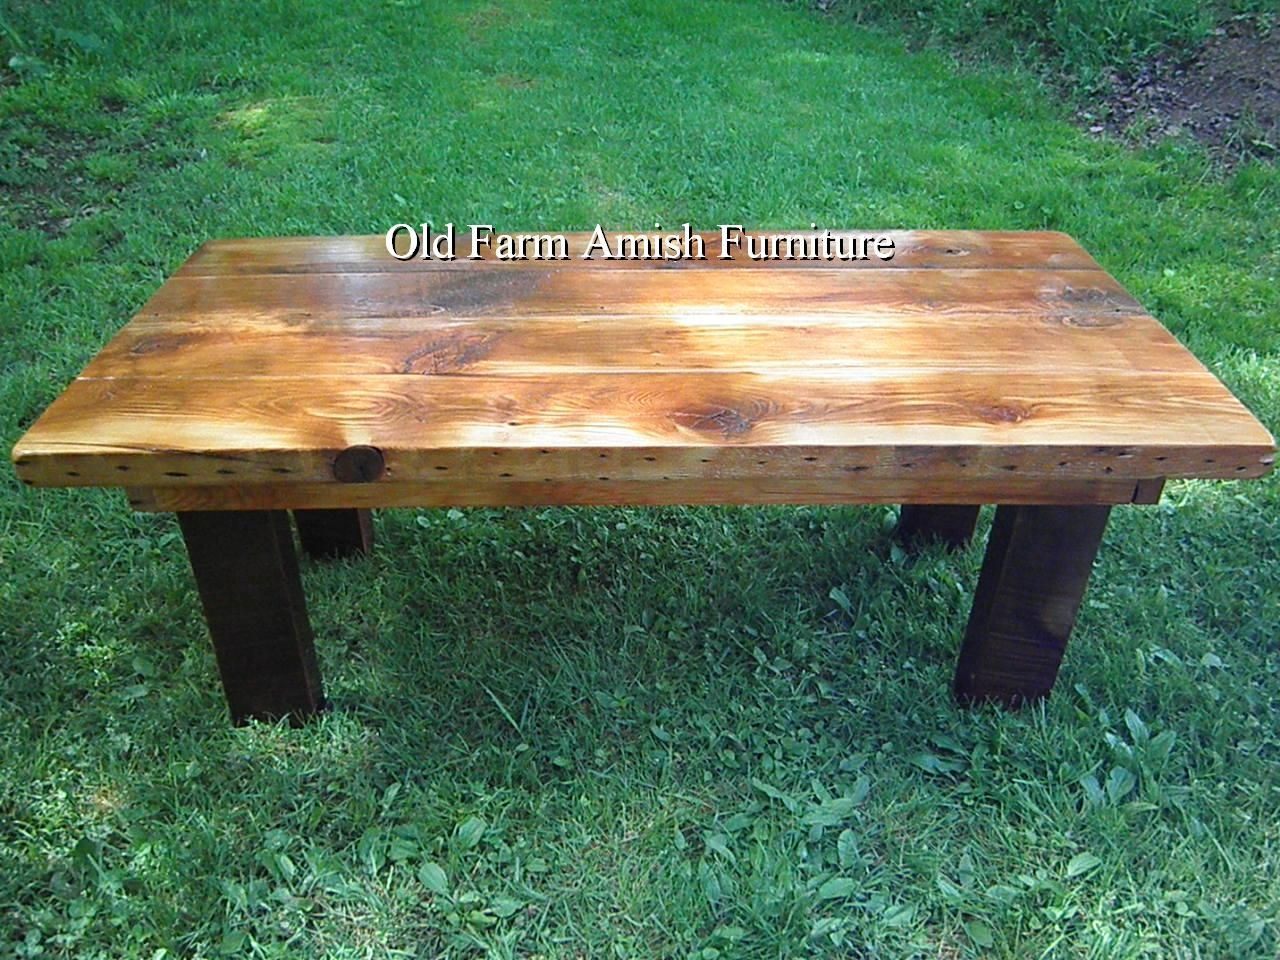 Coffee Table End Tables Hand Crafted Reclaimed Barnwood Coffee Table End Tables By Old